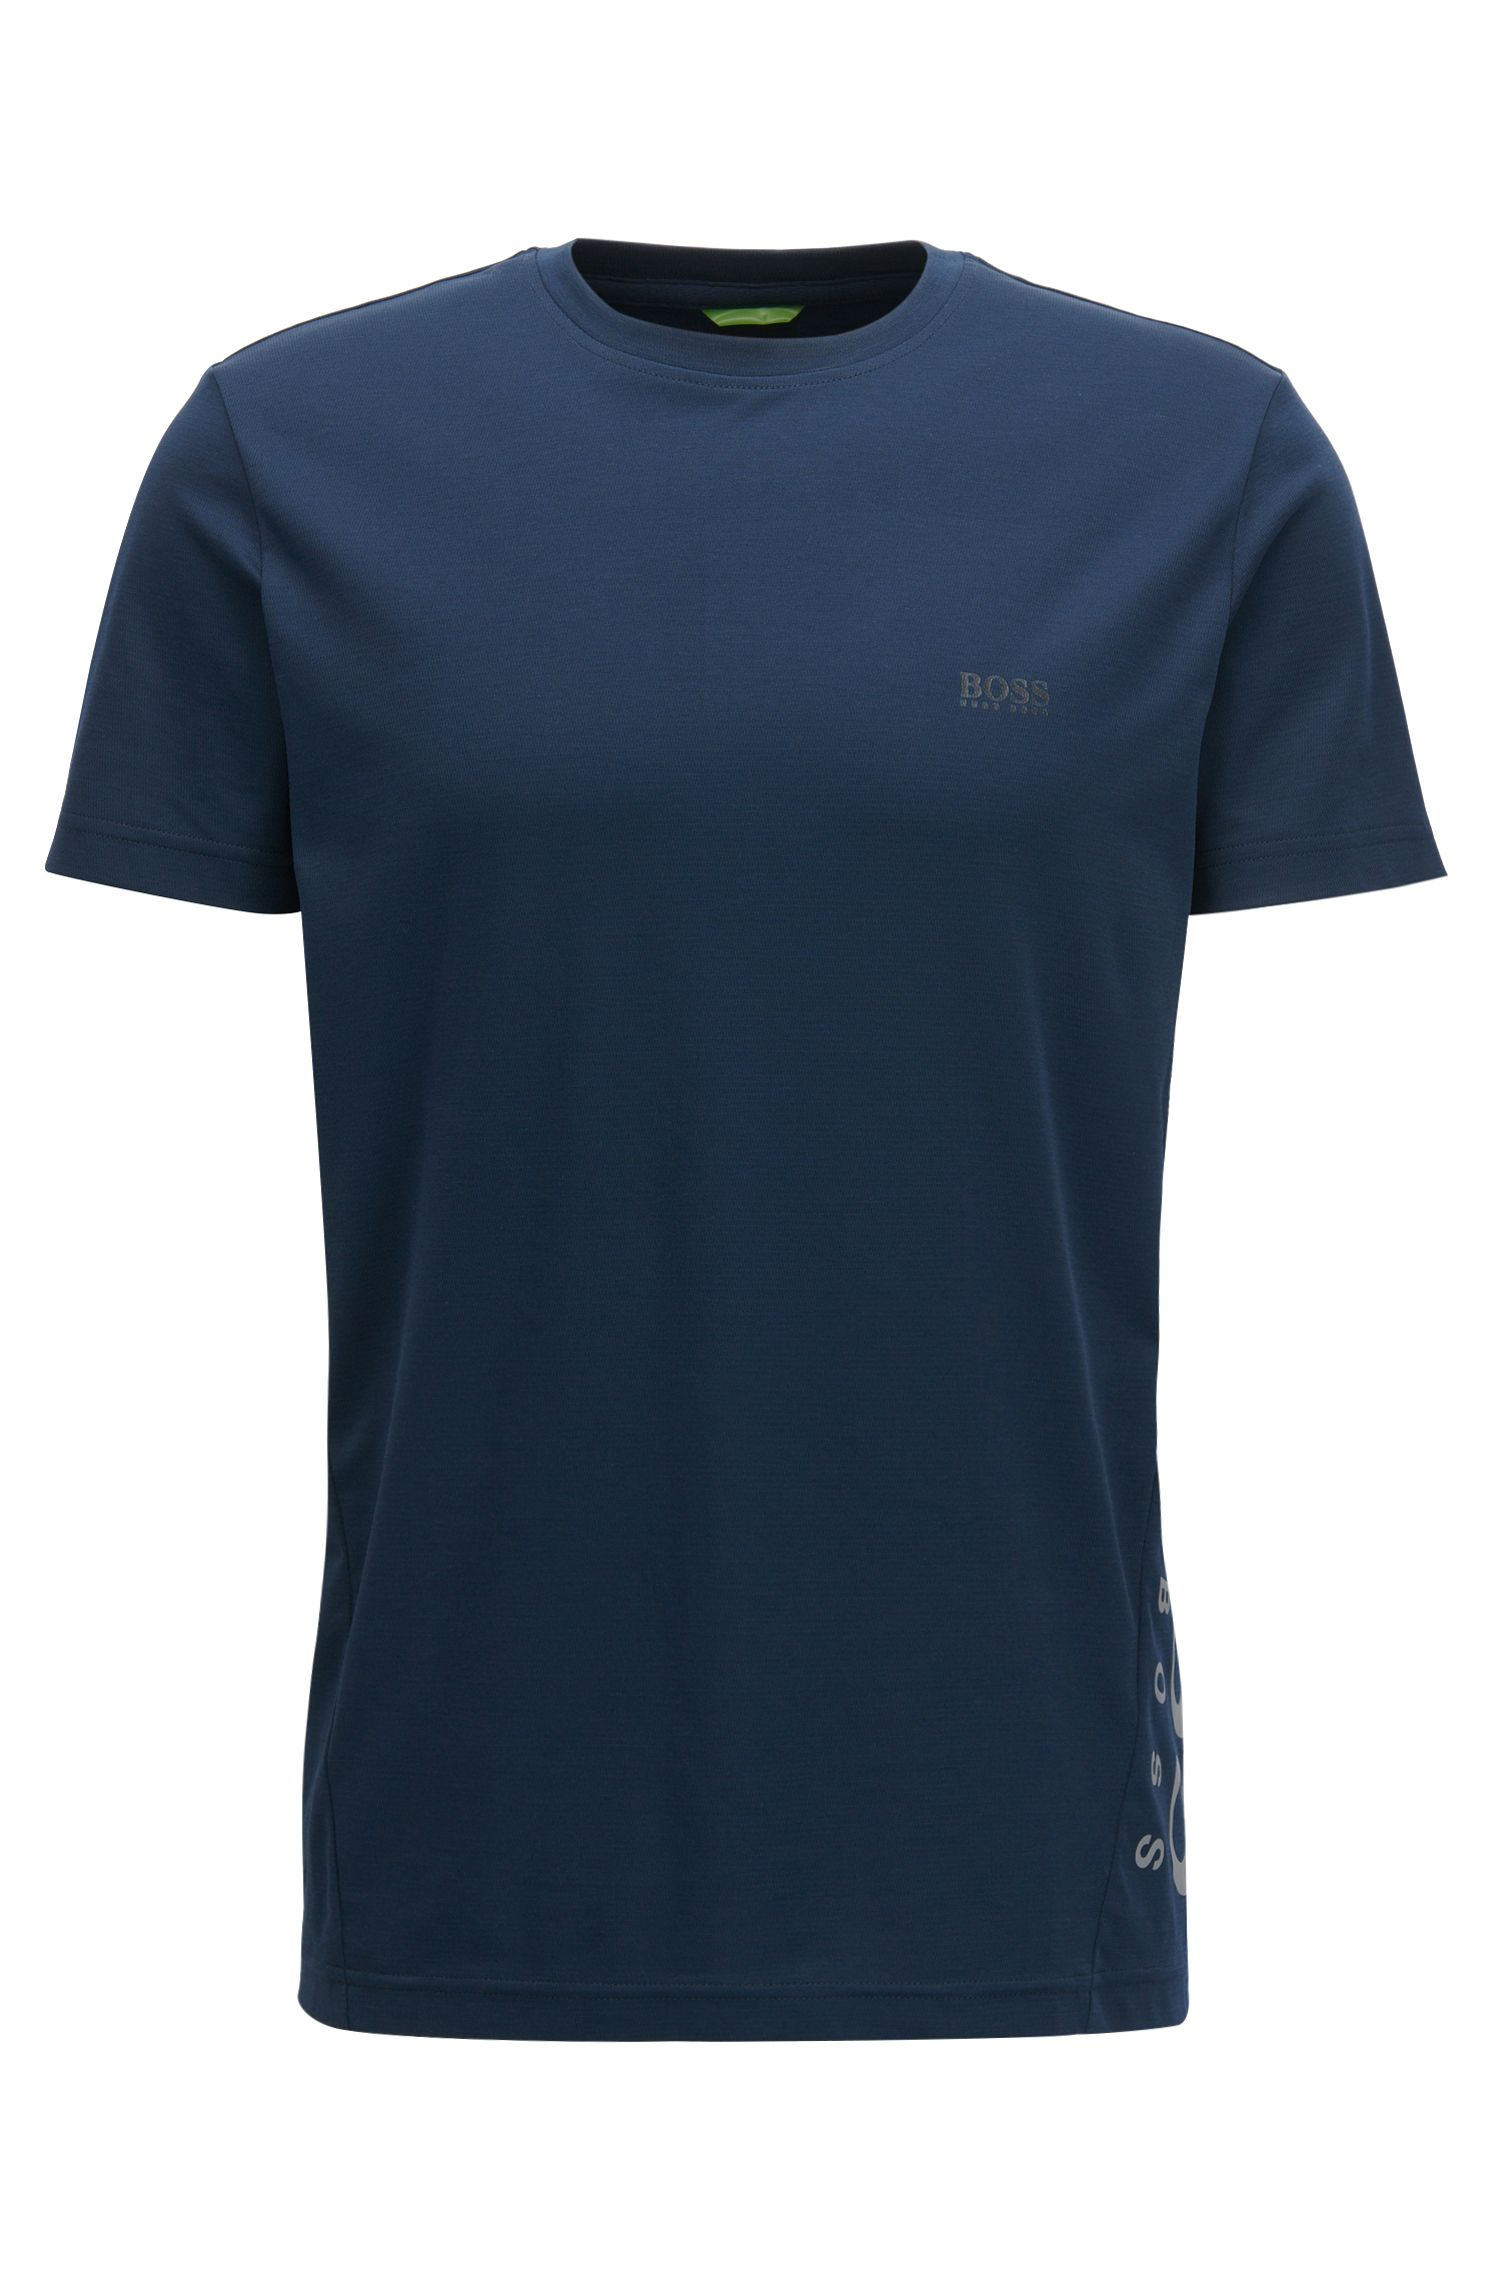 Moisture Management Cotton Blend T-Shirt | TL Tech, Dark Blue